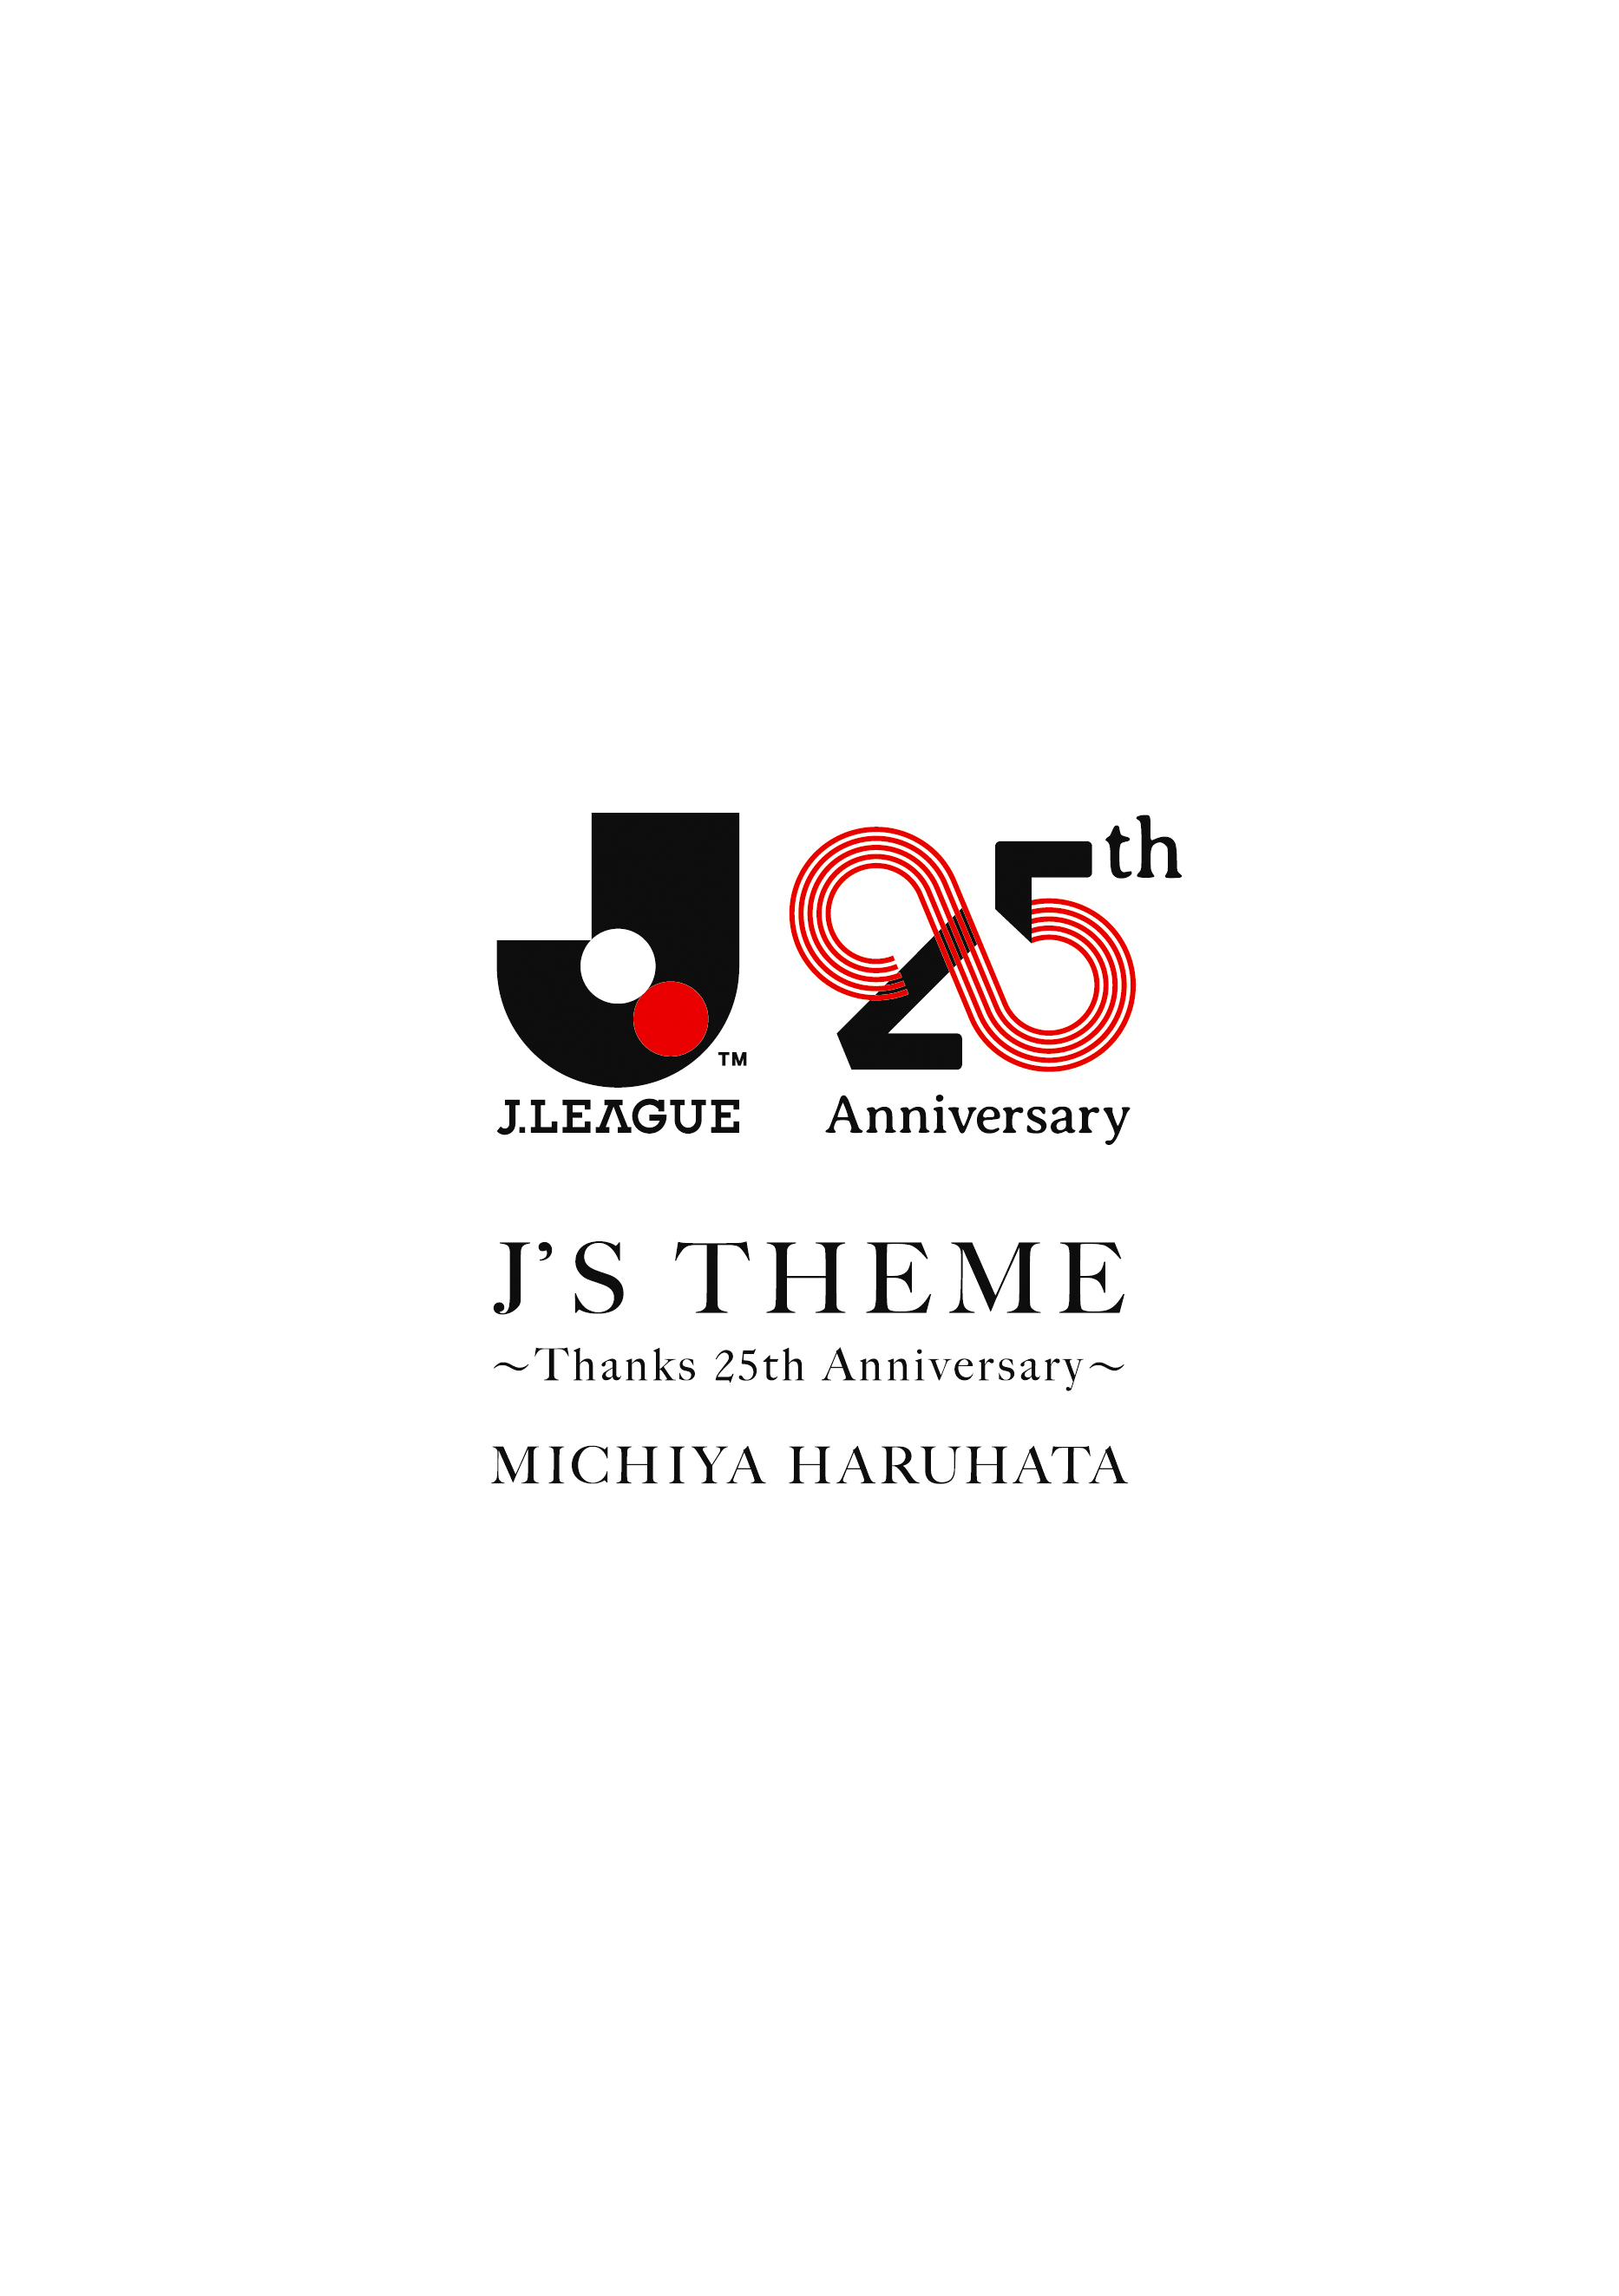 『J'S THEME ~Thanks 25th Anniversary~』初回生産限定盤